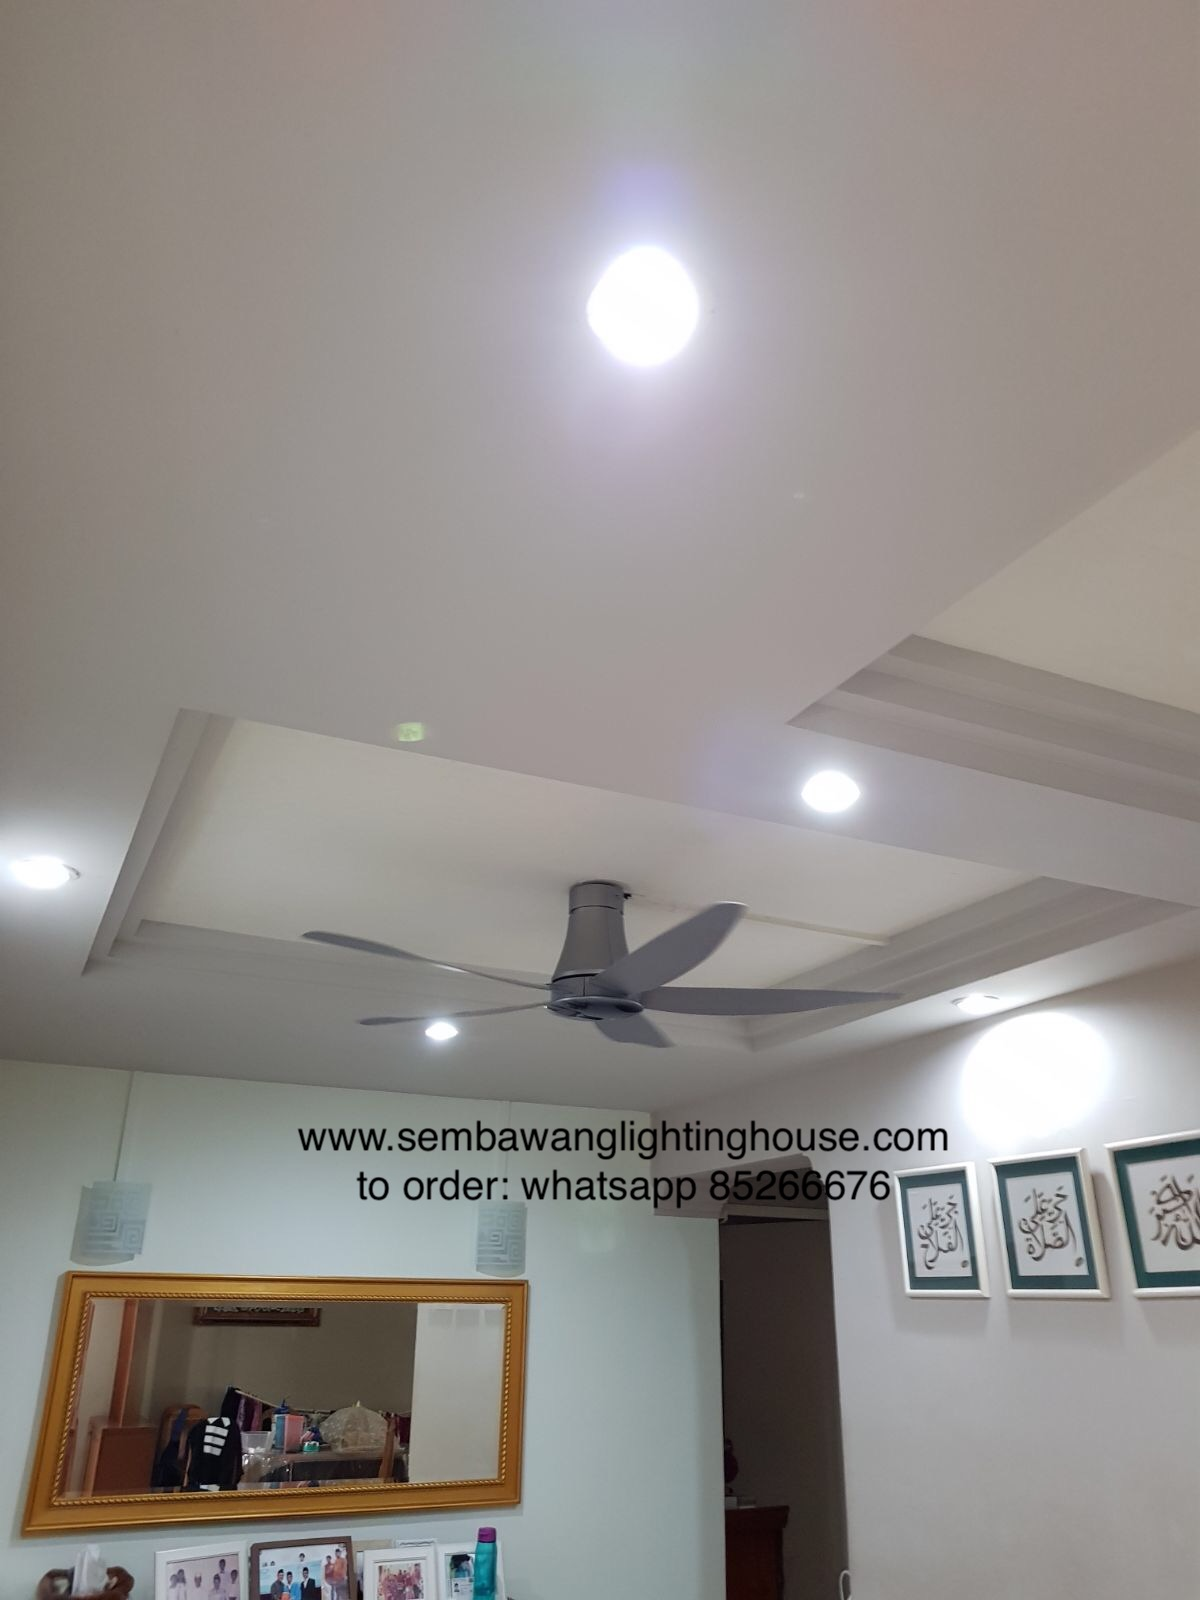 kdk-t60aw-ceiling-fan-without-light-sembawang-lighting-house-sample-02.jpg